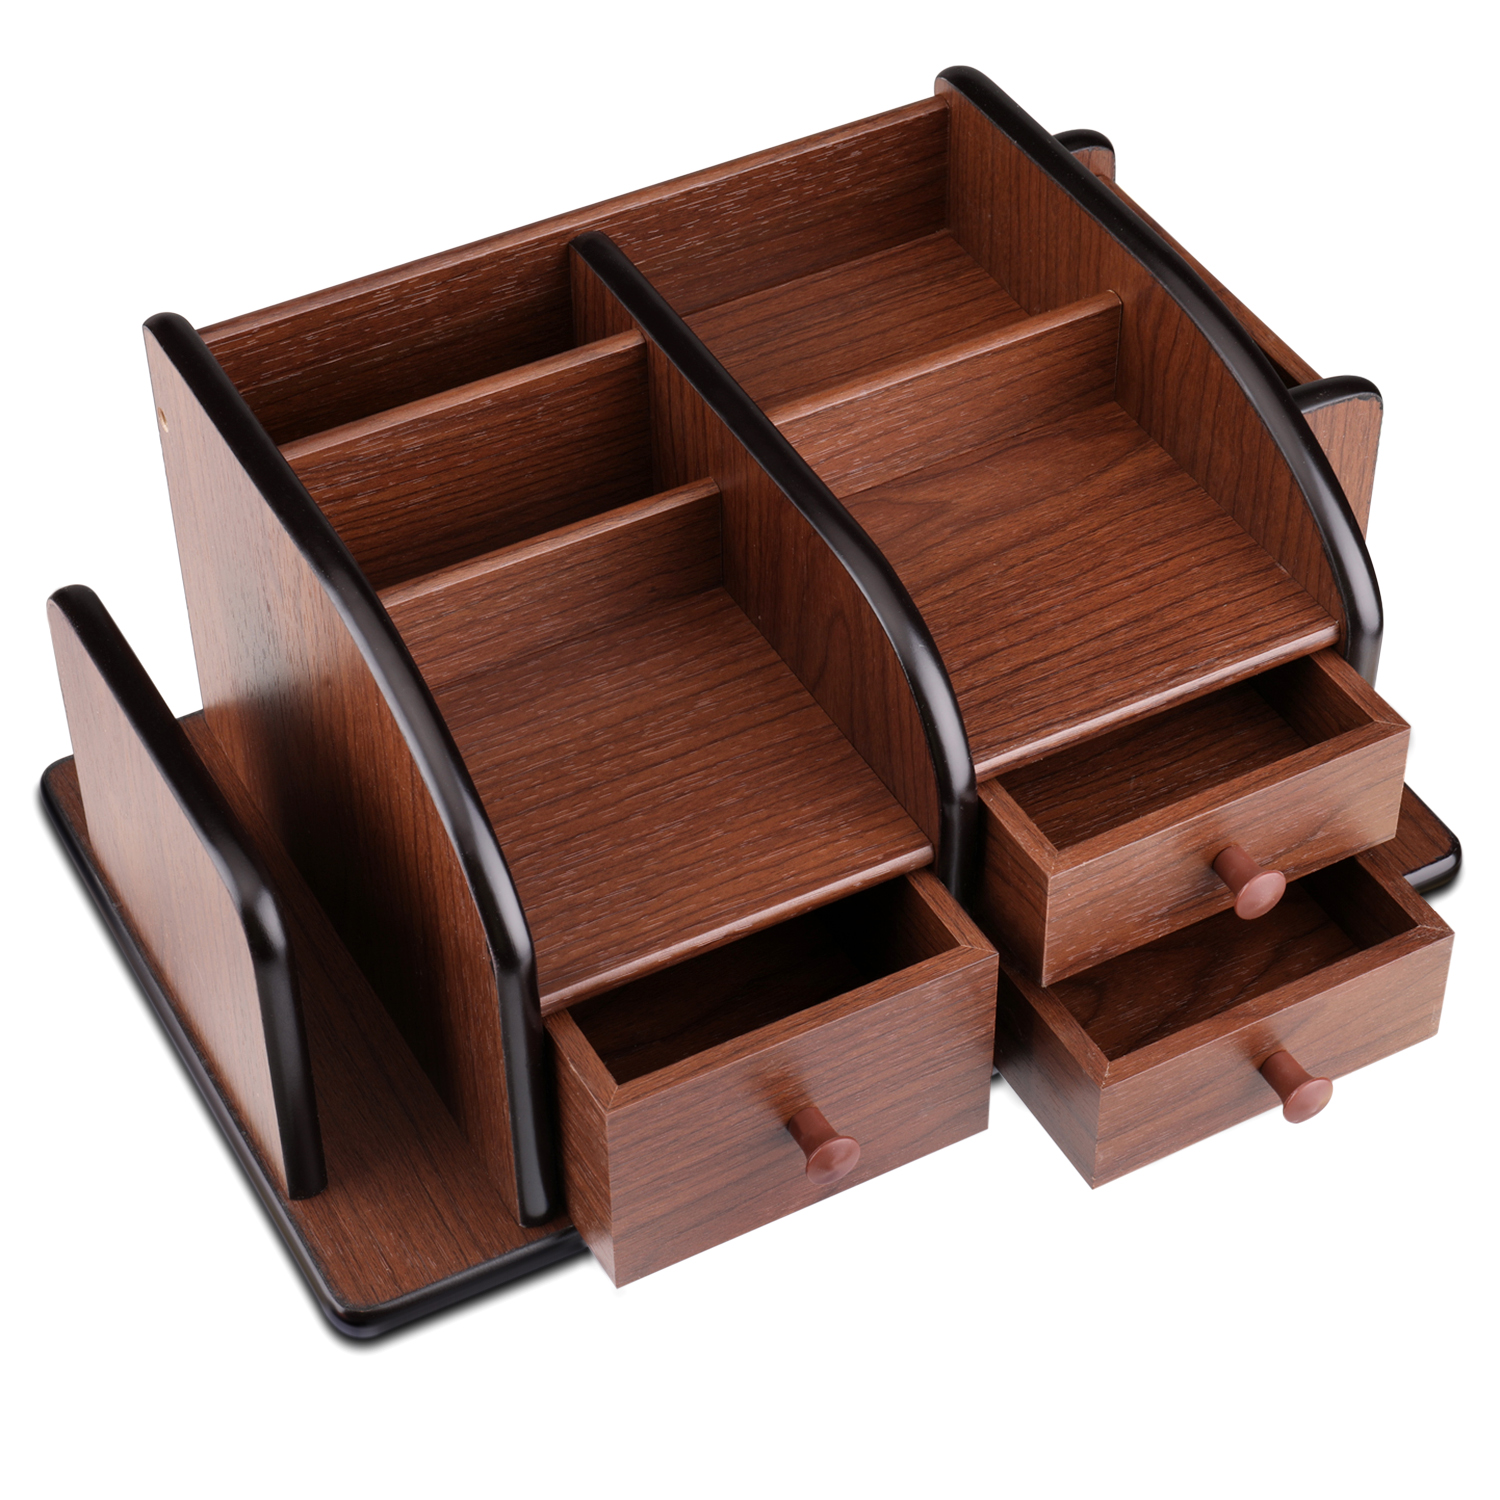 Slide-Out Drawer - Features 3 drawers which you can pull out smoothly and goes right back easily for secure and expandable storage that's right there when you need it